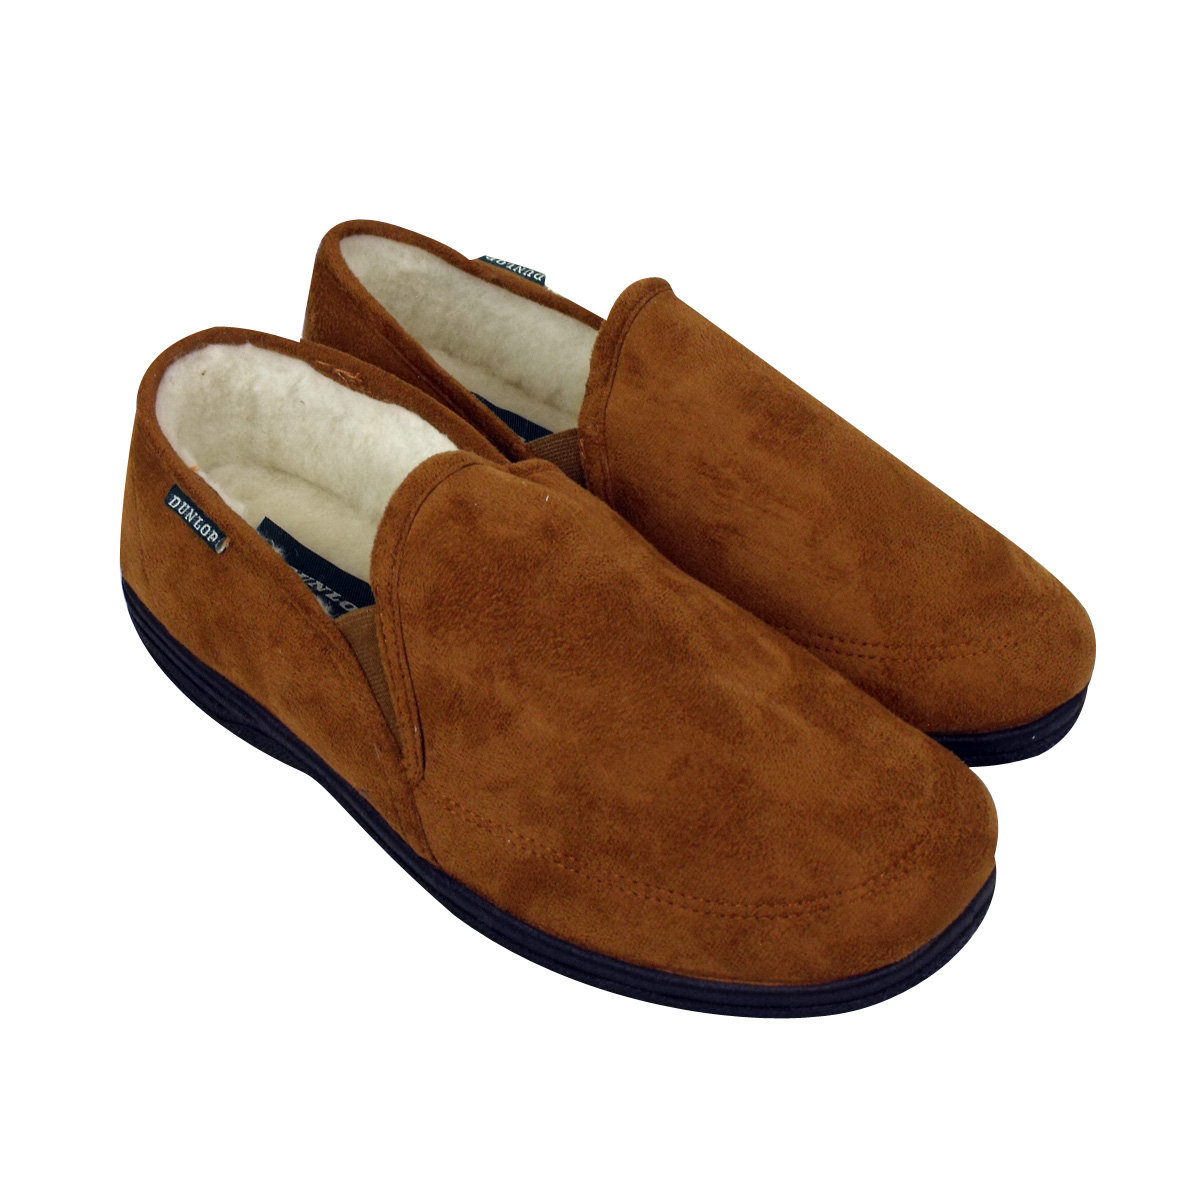 Kacakid Cute Baby Boy Girl Soft Comfy Shoes Winter Warm Bootie Slipper Crib Shoes See Details Product - NORTY Little and Big Kids Boys Girls Unisex Suede Leather Moccasin Slip On Slippers, Magenta / 3MUSLittleKid.